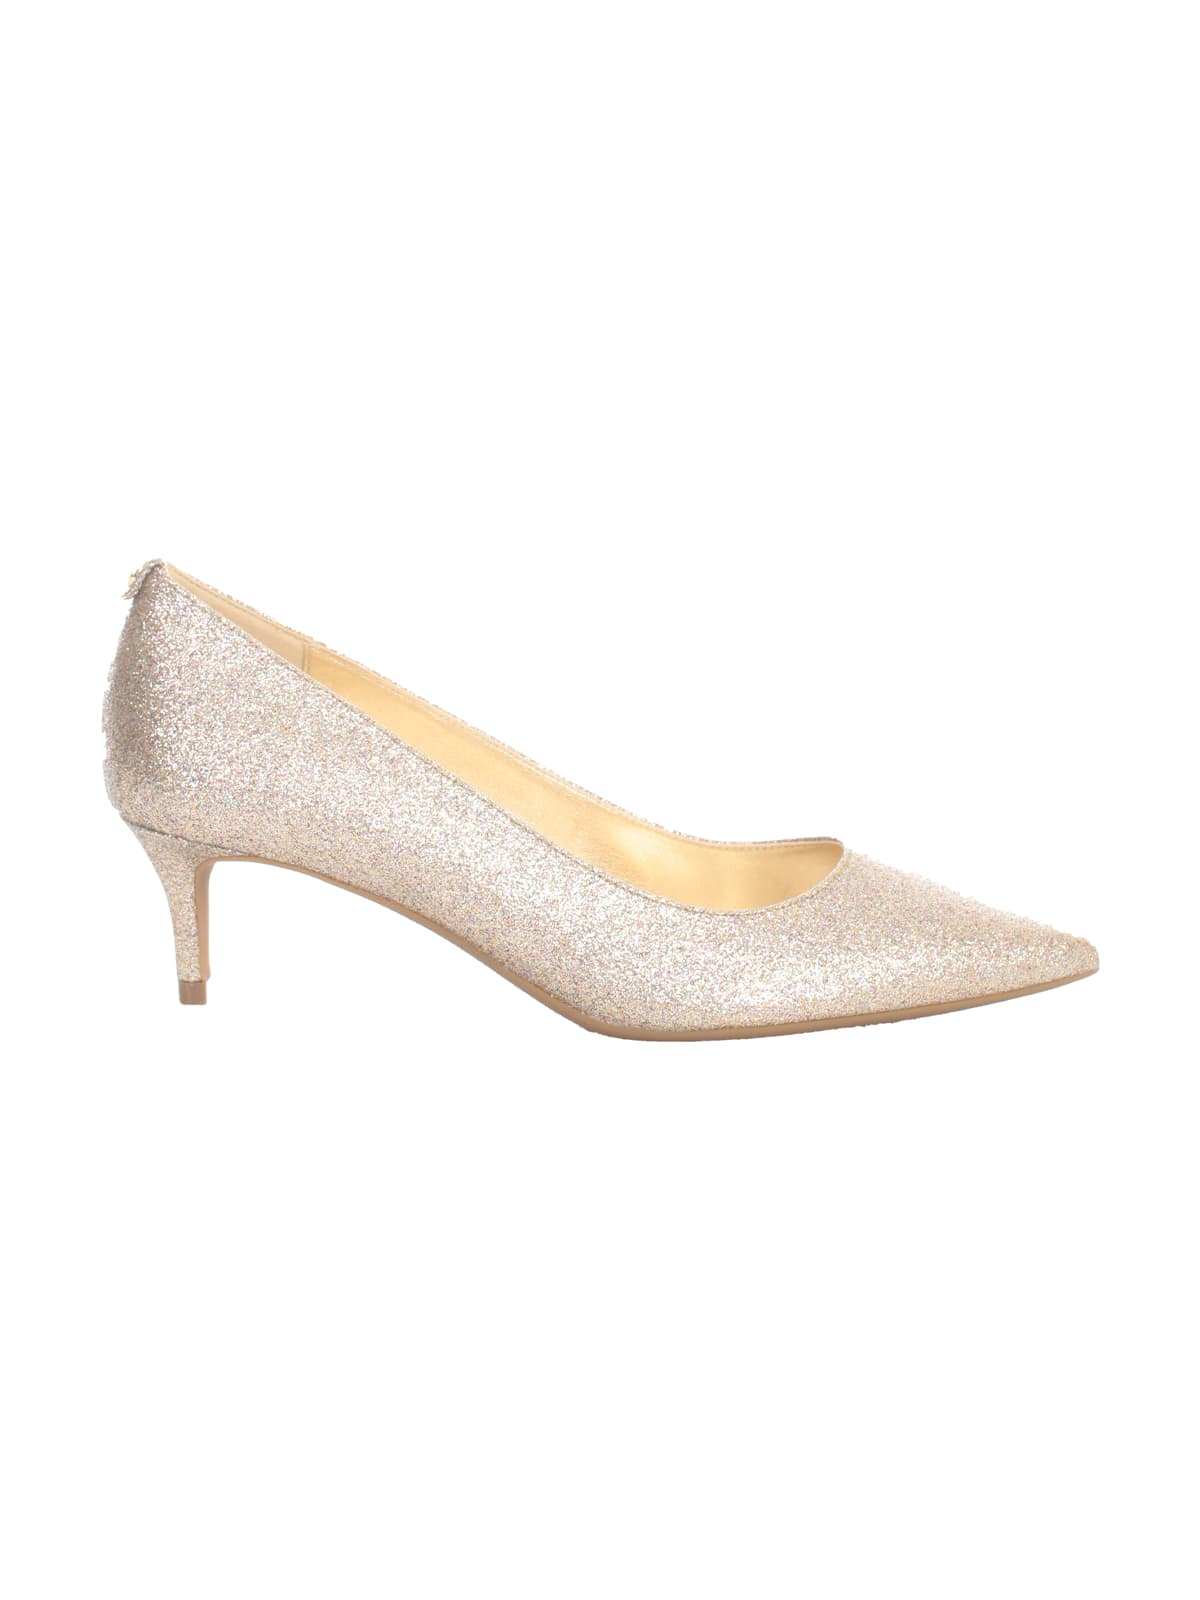 MICHAEL Michael Kors Sara Flex Kitten Pumps